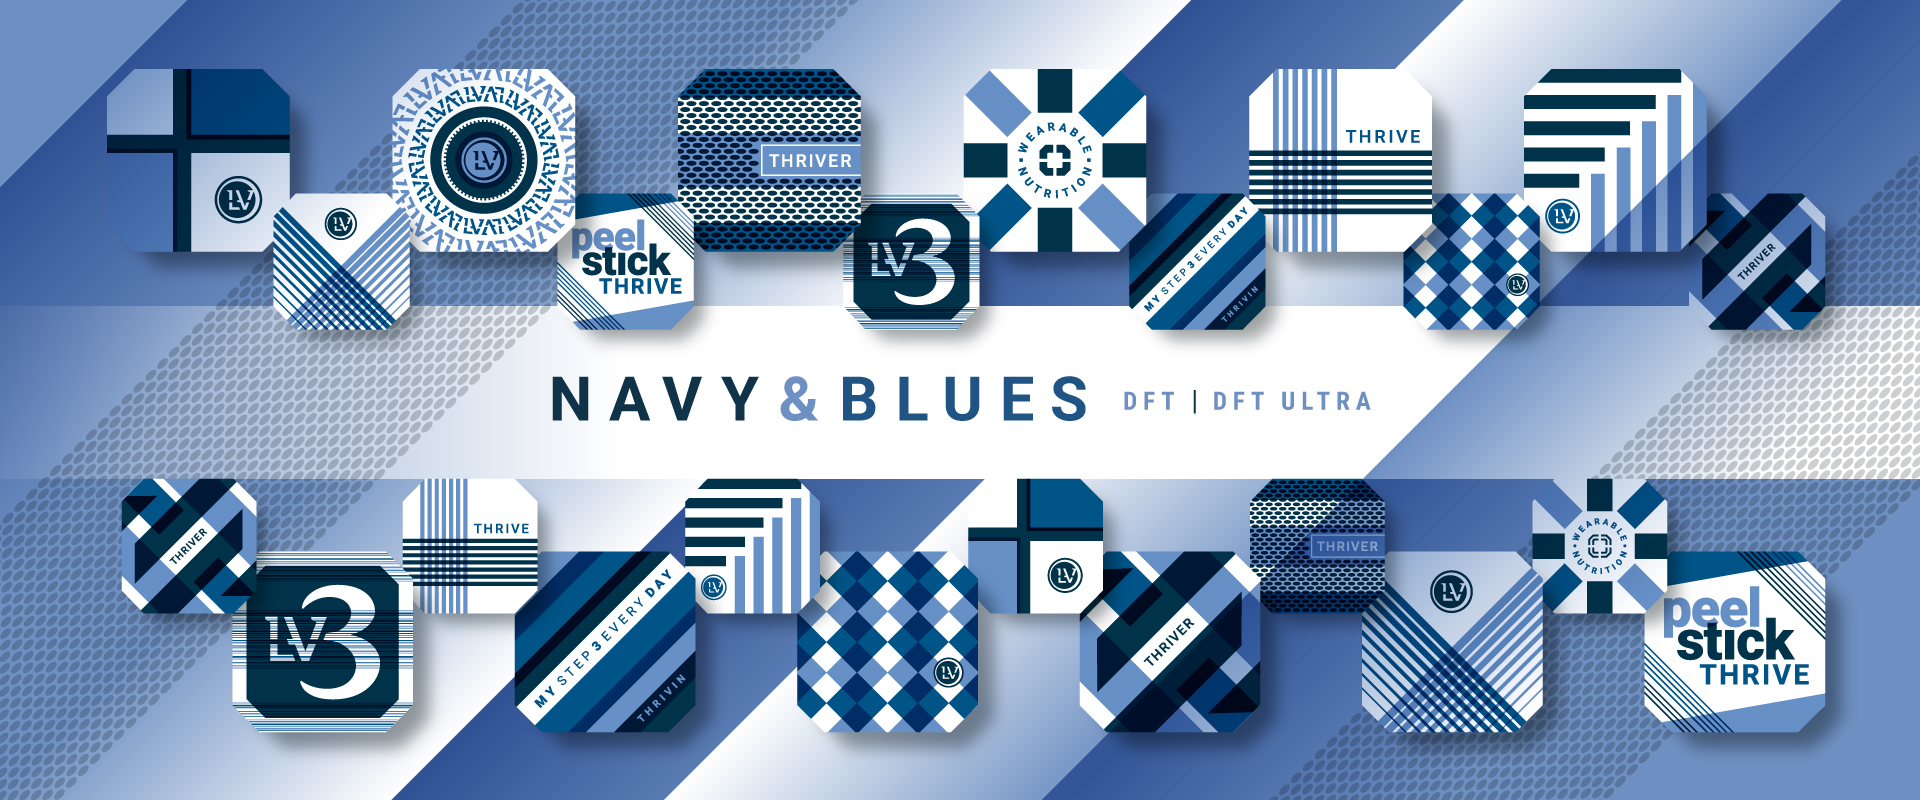 THRIVE DFT Navy Blues